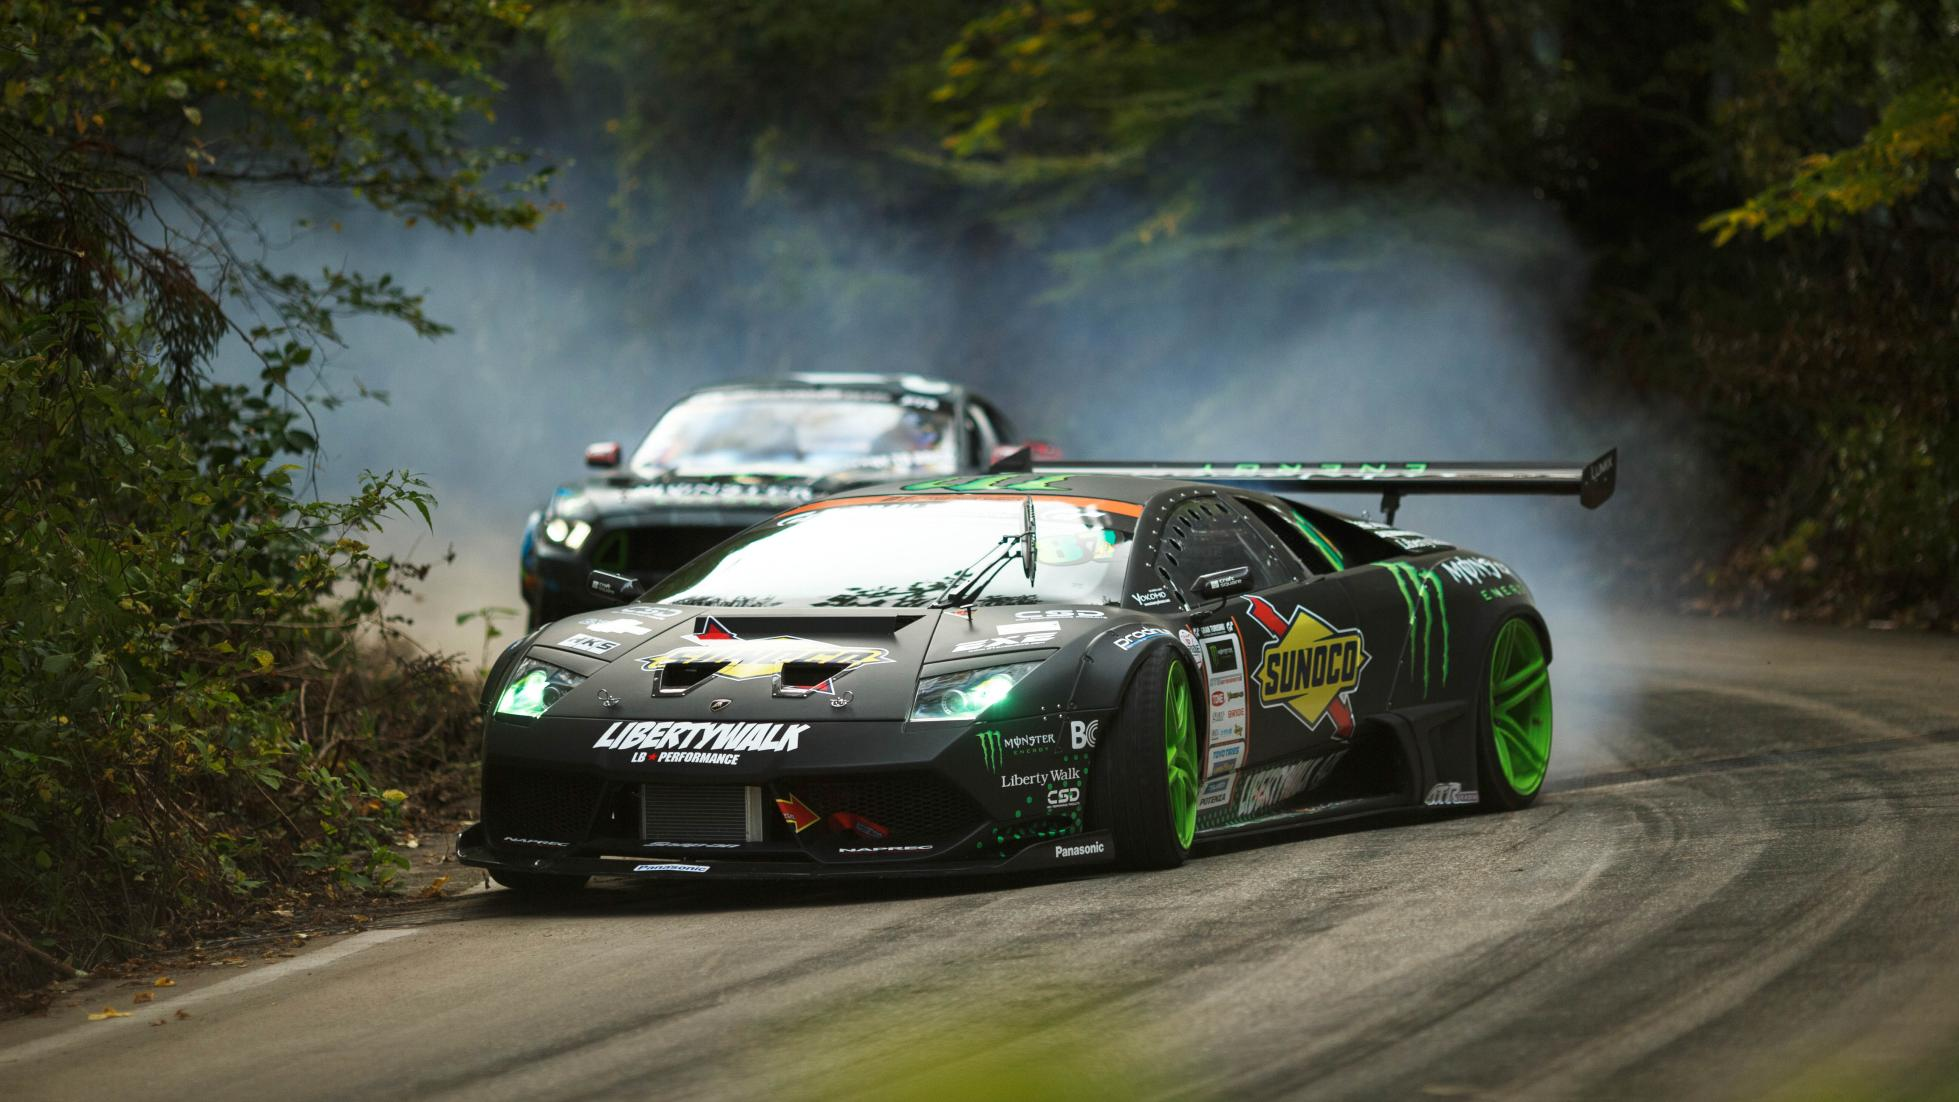 Vaughn Gittin's Mustang RTR faces insane Lamborghini in #BATTLEDRIFT